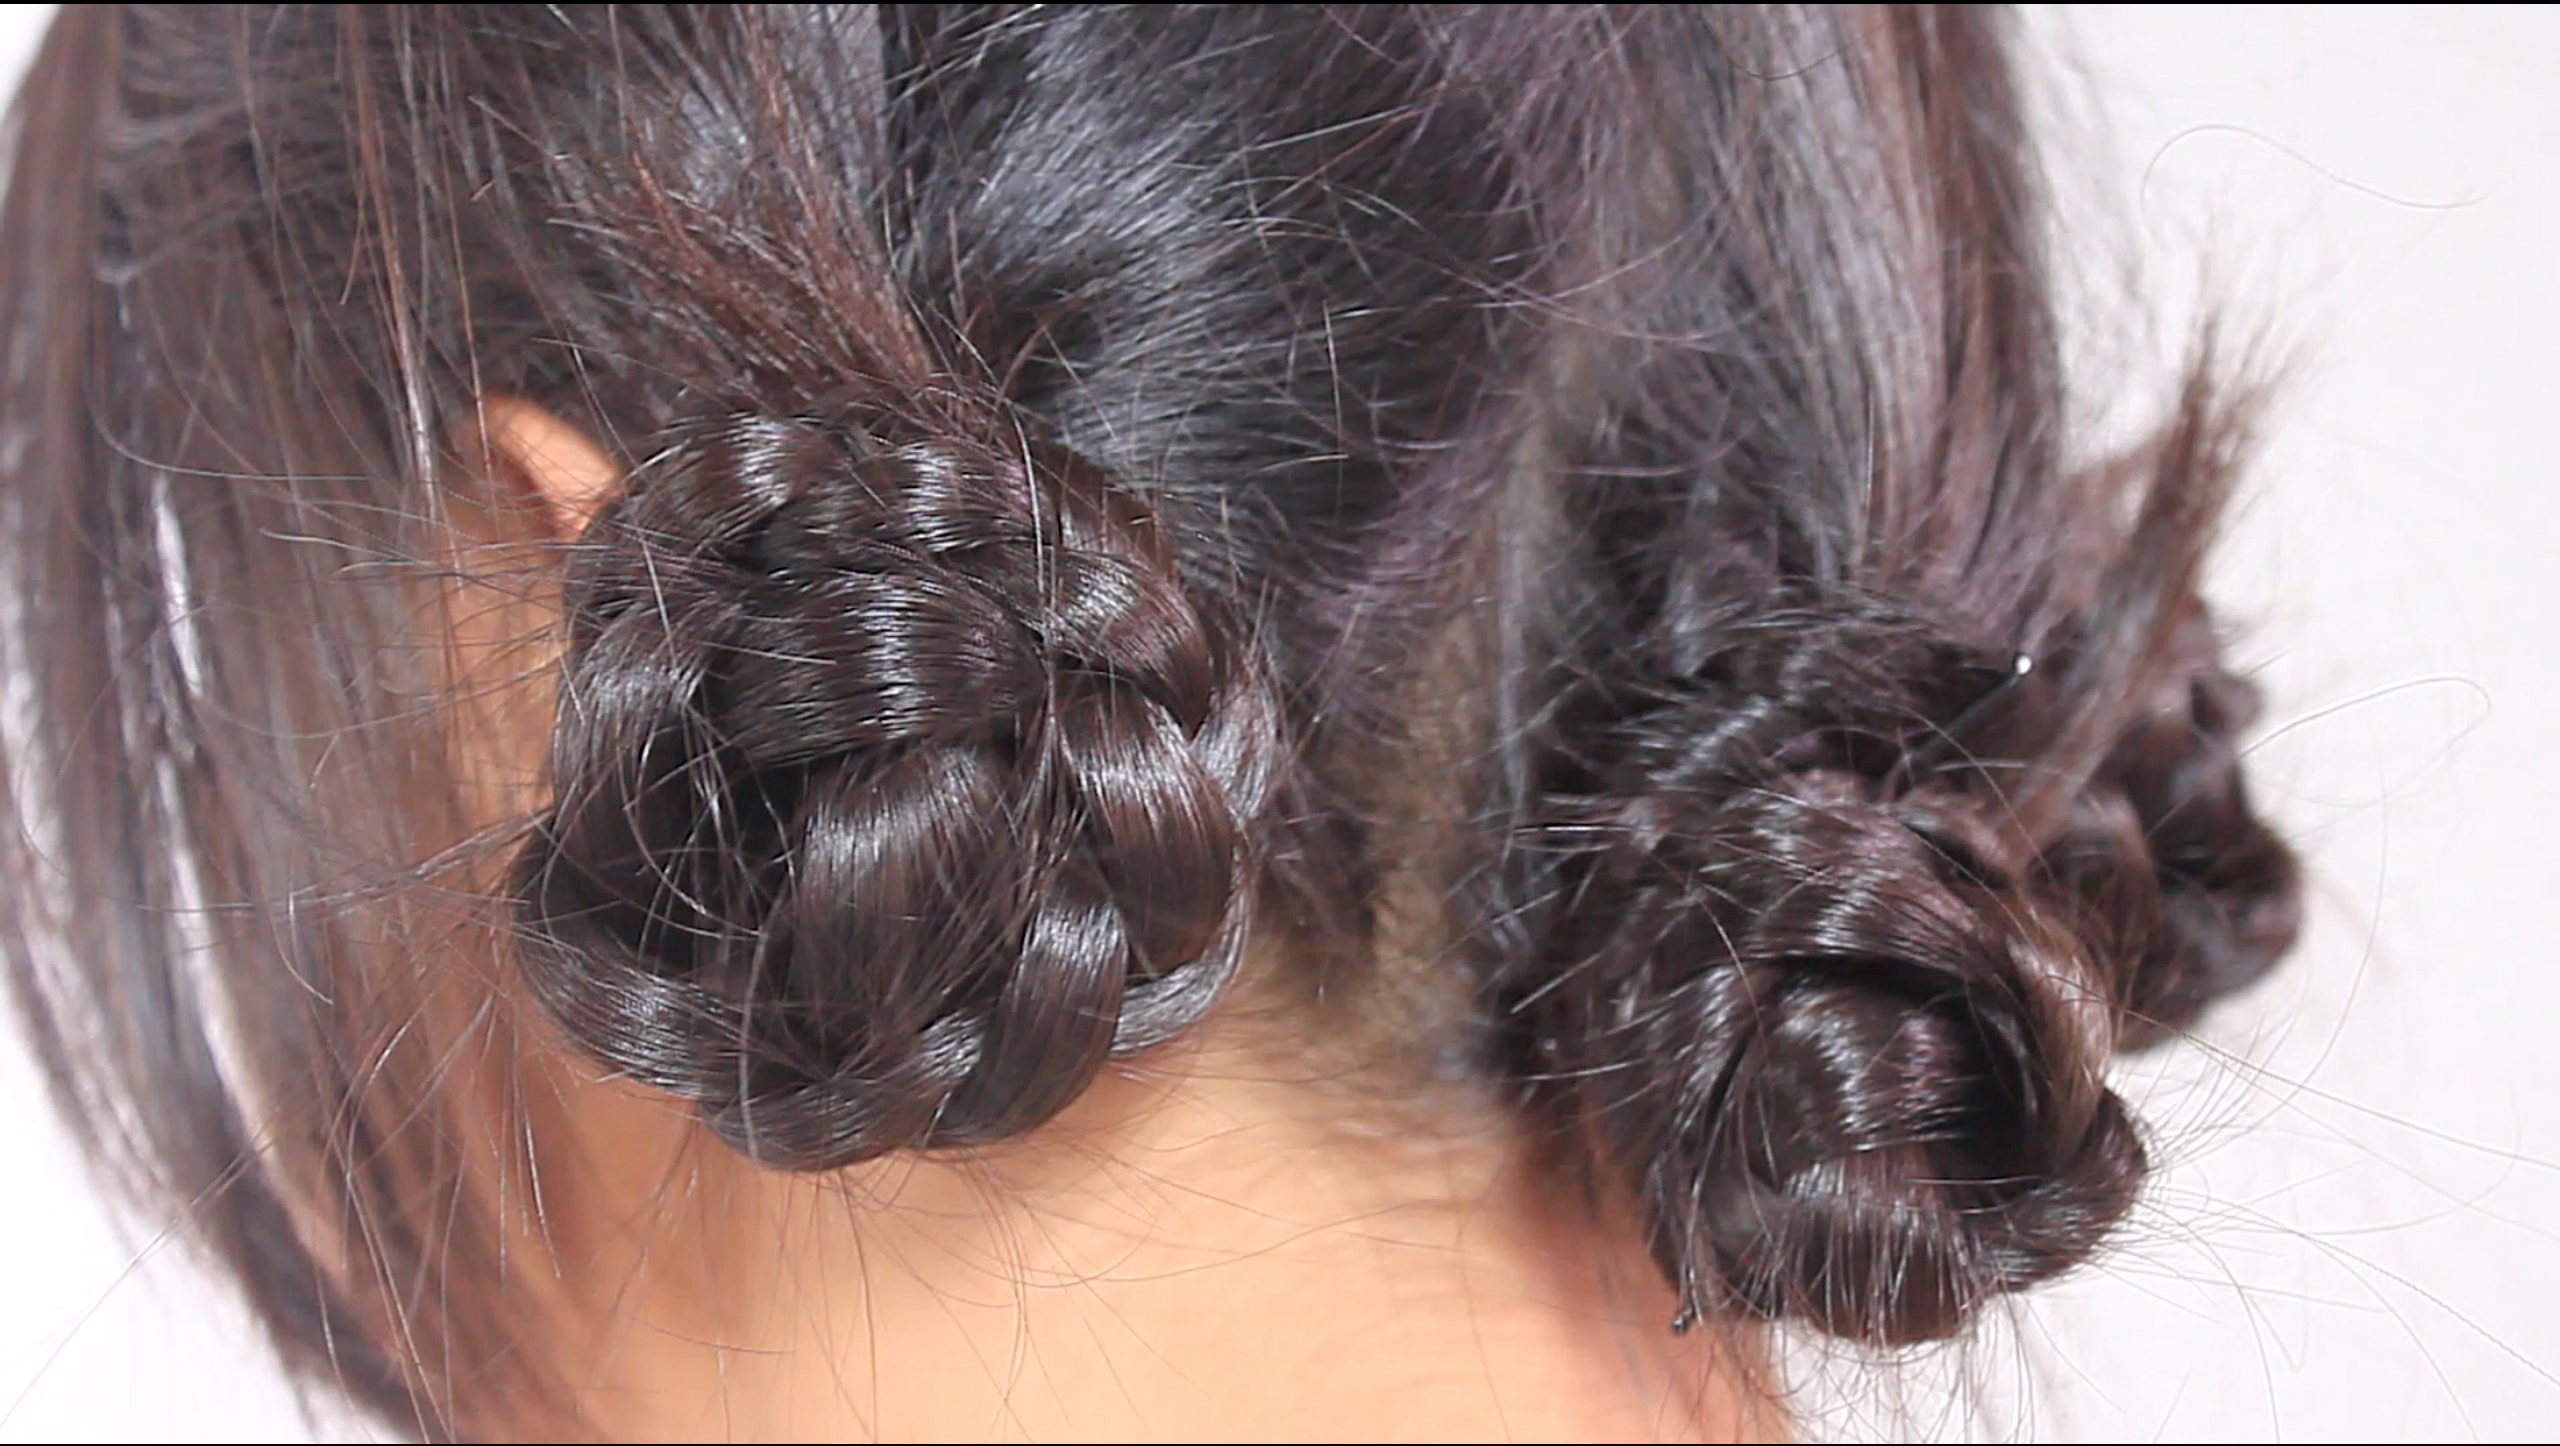 4 Ways To Make A Braided Bun – Wikihow For Popular Braids And Buns Hairstyles (View 15 of 20)